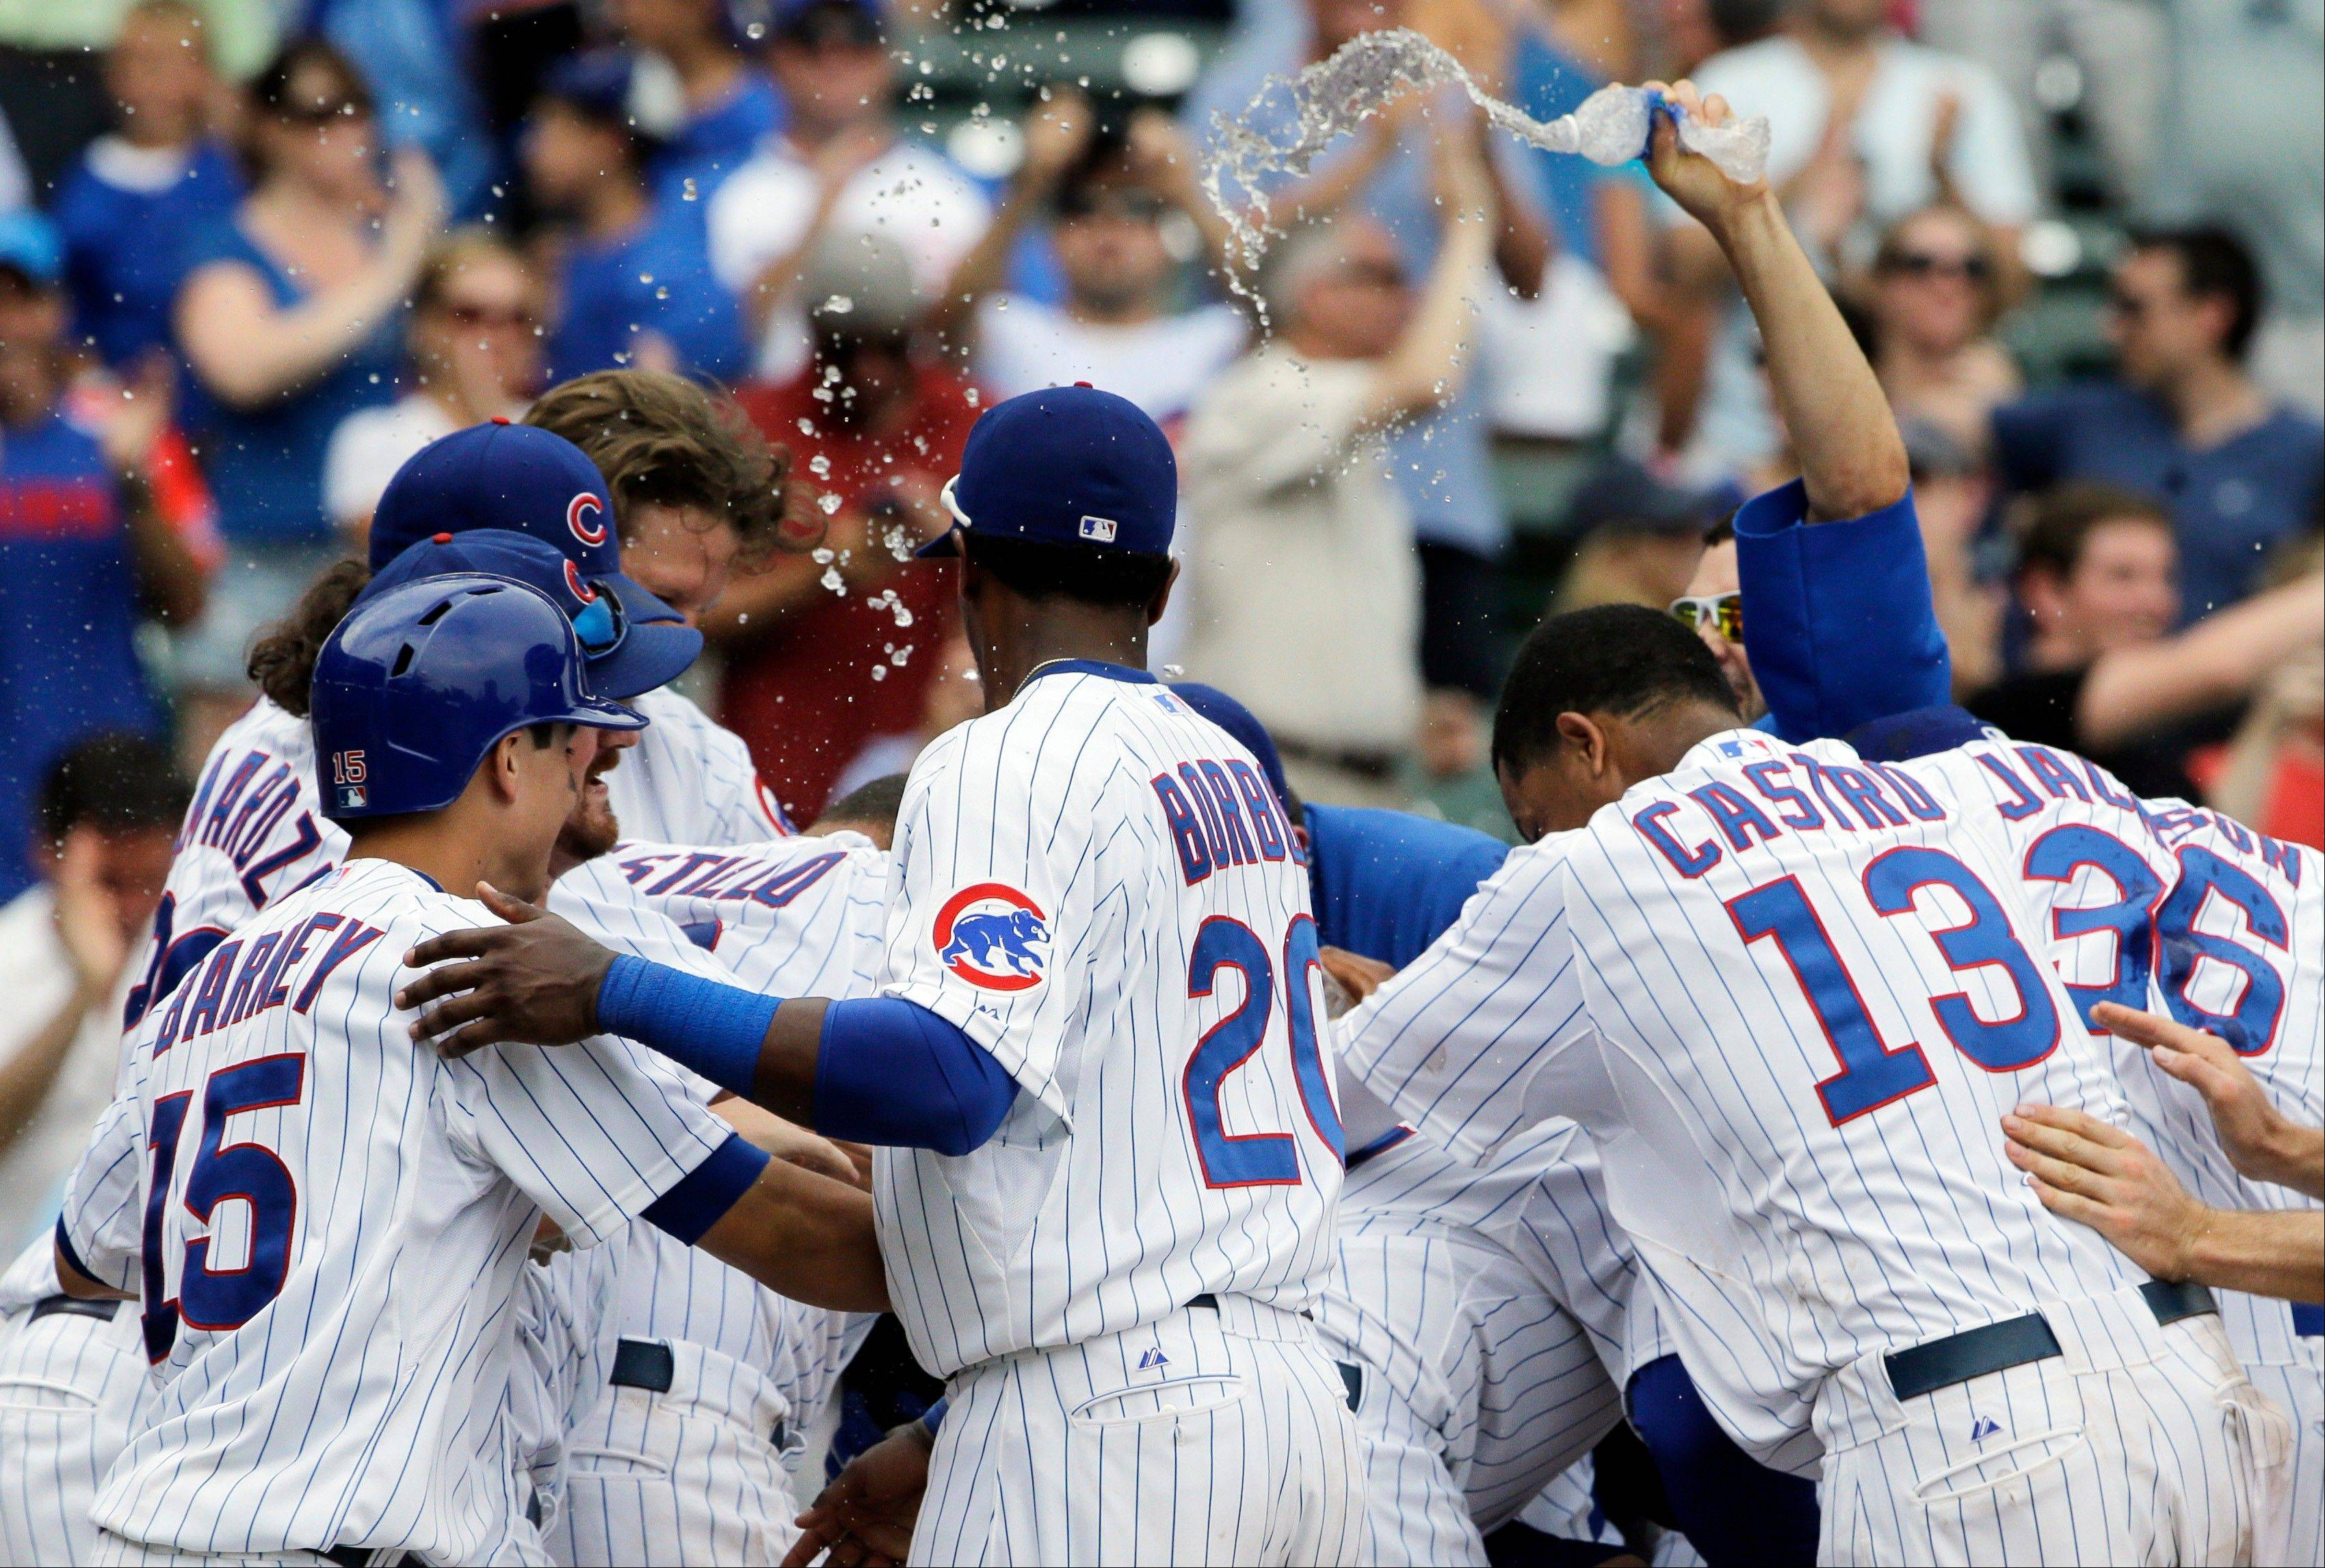 The Cubs celebrate after Dioner Navarro's sacrifice fly sunk the Pittsburgh Pirates in the 11th inning Sunday at Wrigley Field.